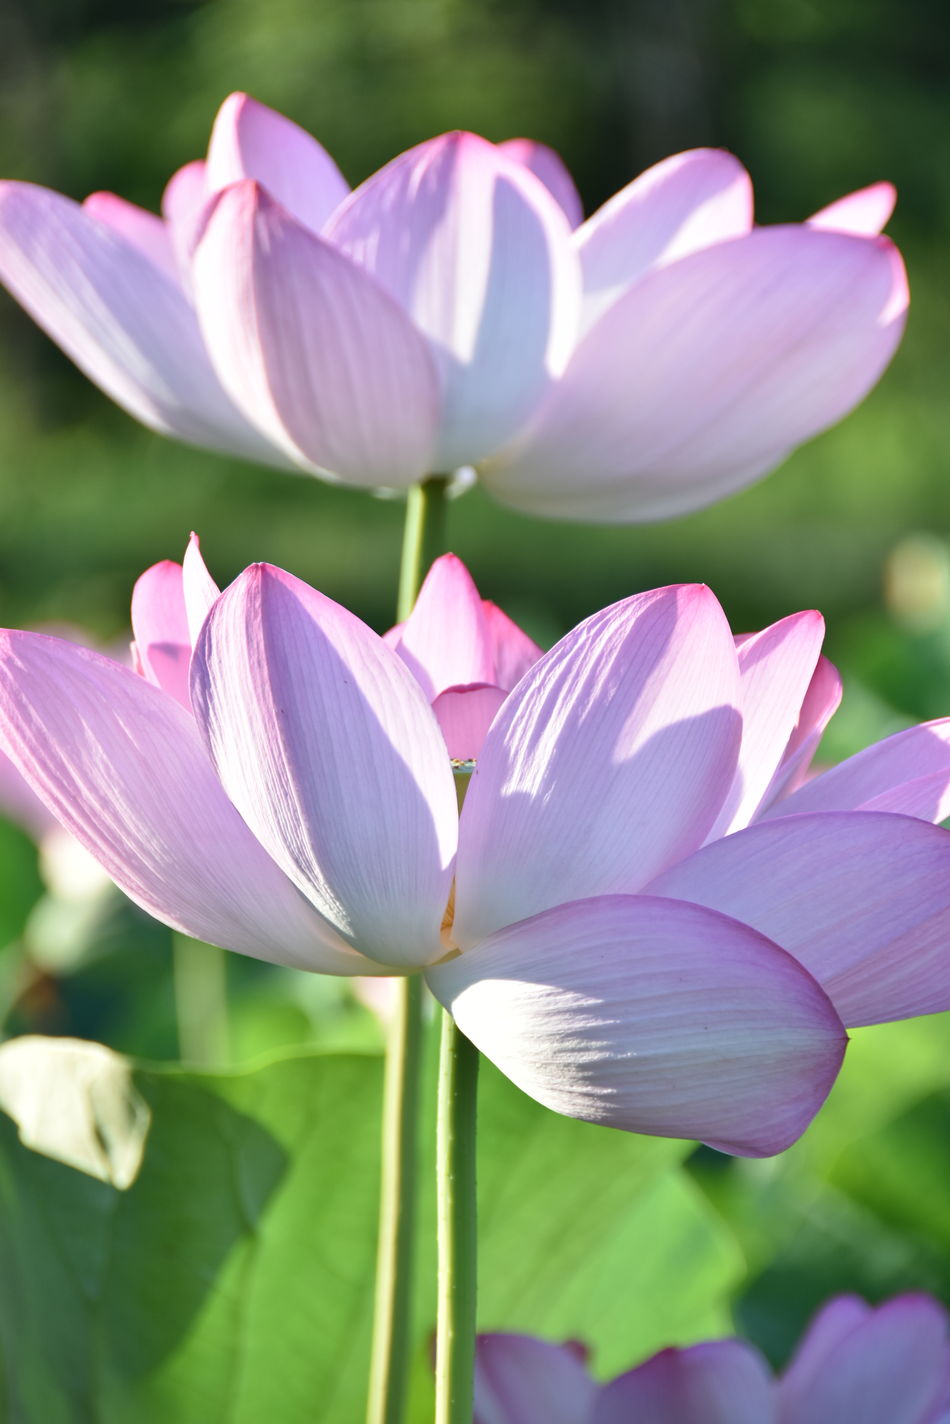 Beauty In Nature Beauty In Nature Close-up Day Delicate Beauty Flower Flower Head Focus On Foreground Fragile Fragility Freshness Freshness Green Leaves Lily Pond Lotus Flowers Lotus Pond Nature Nature No People Outdoors Petal Pink Color Plant